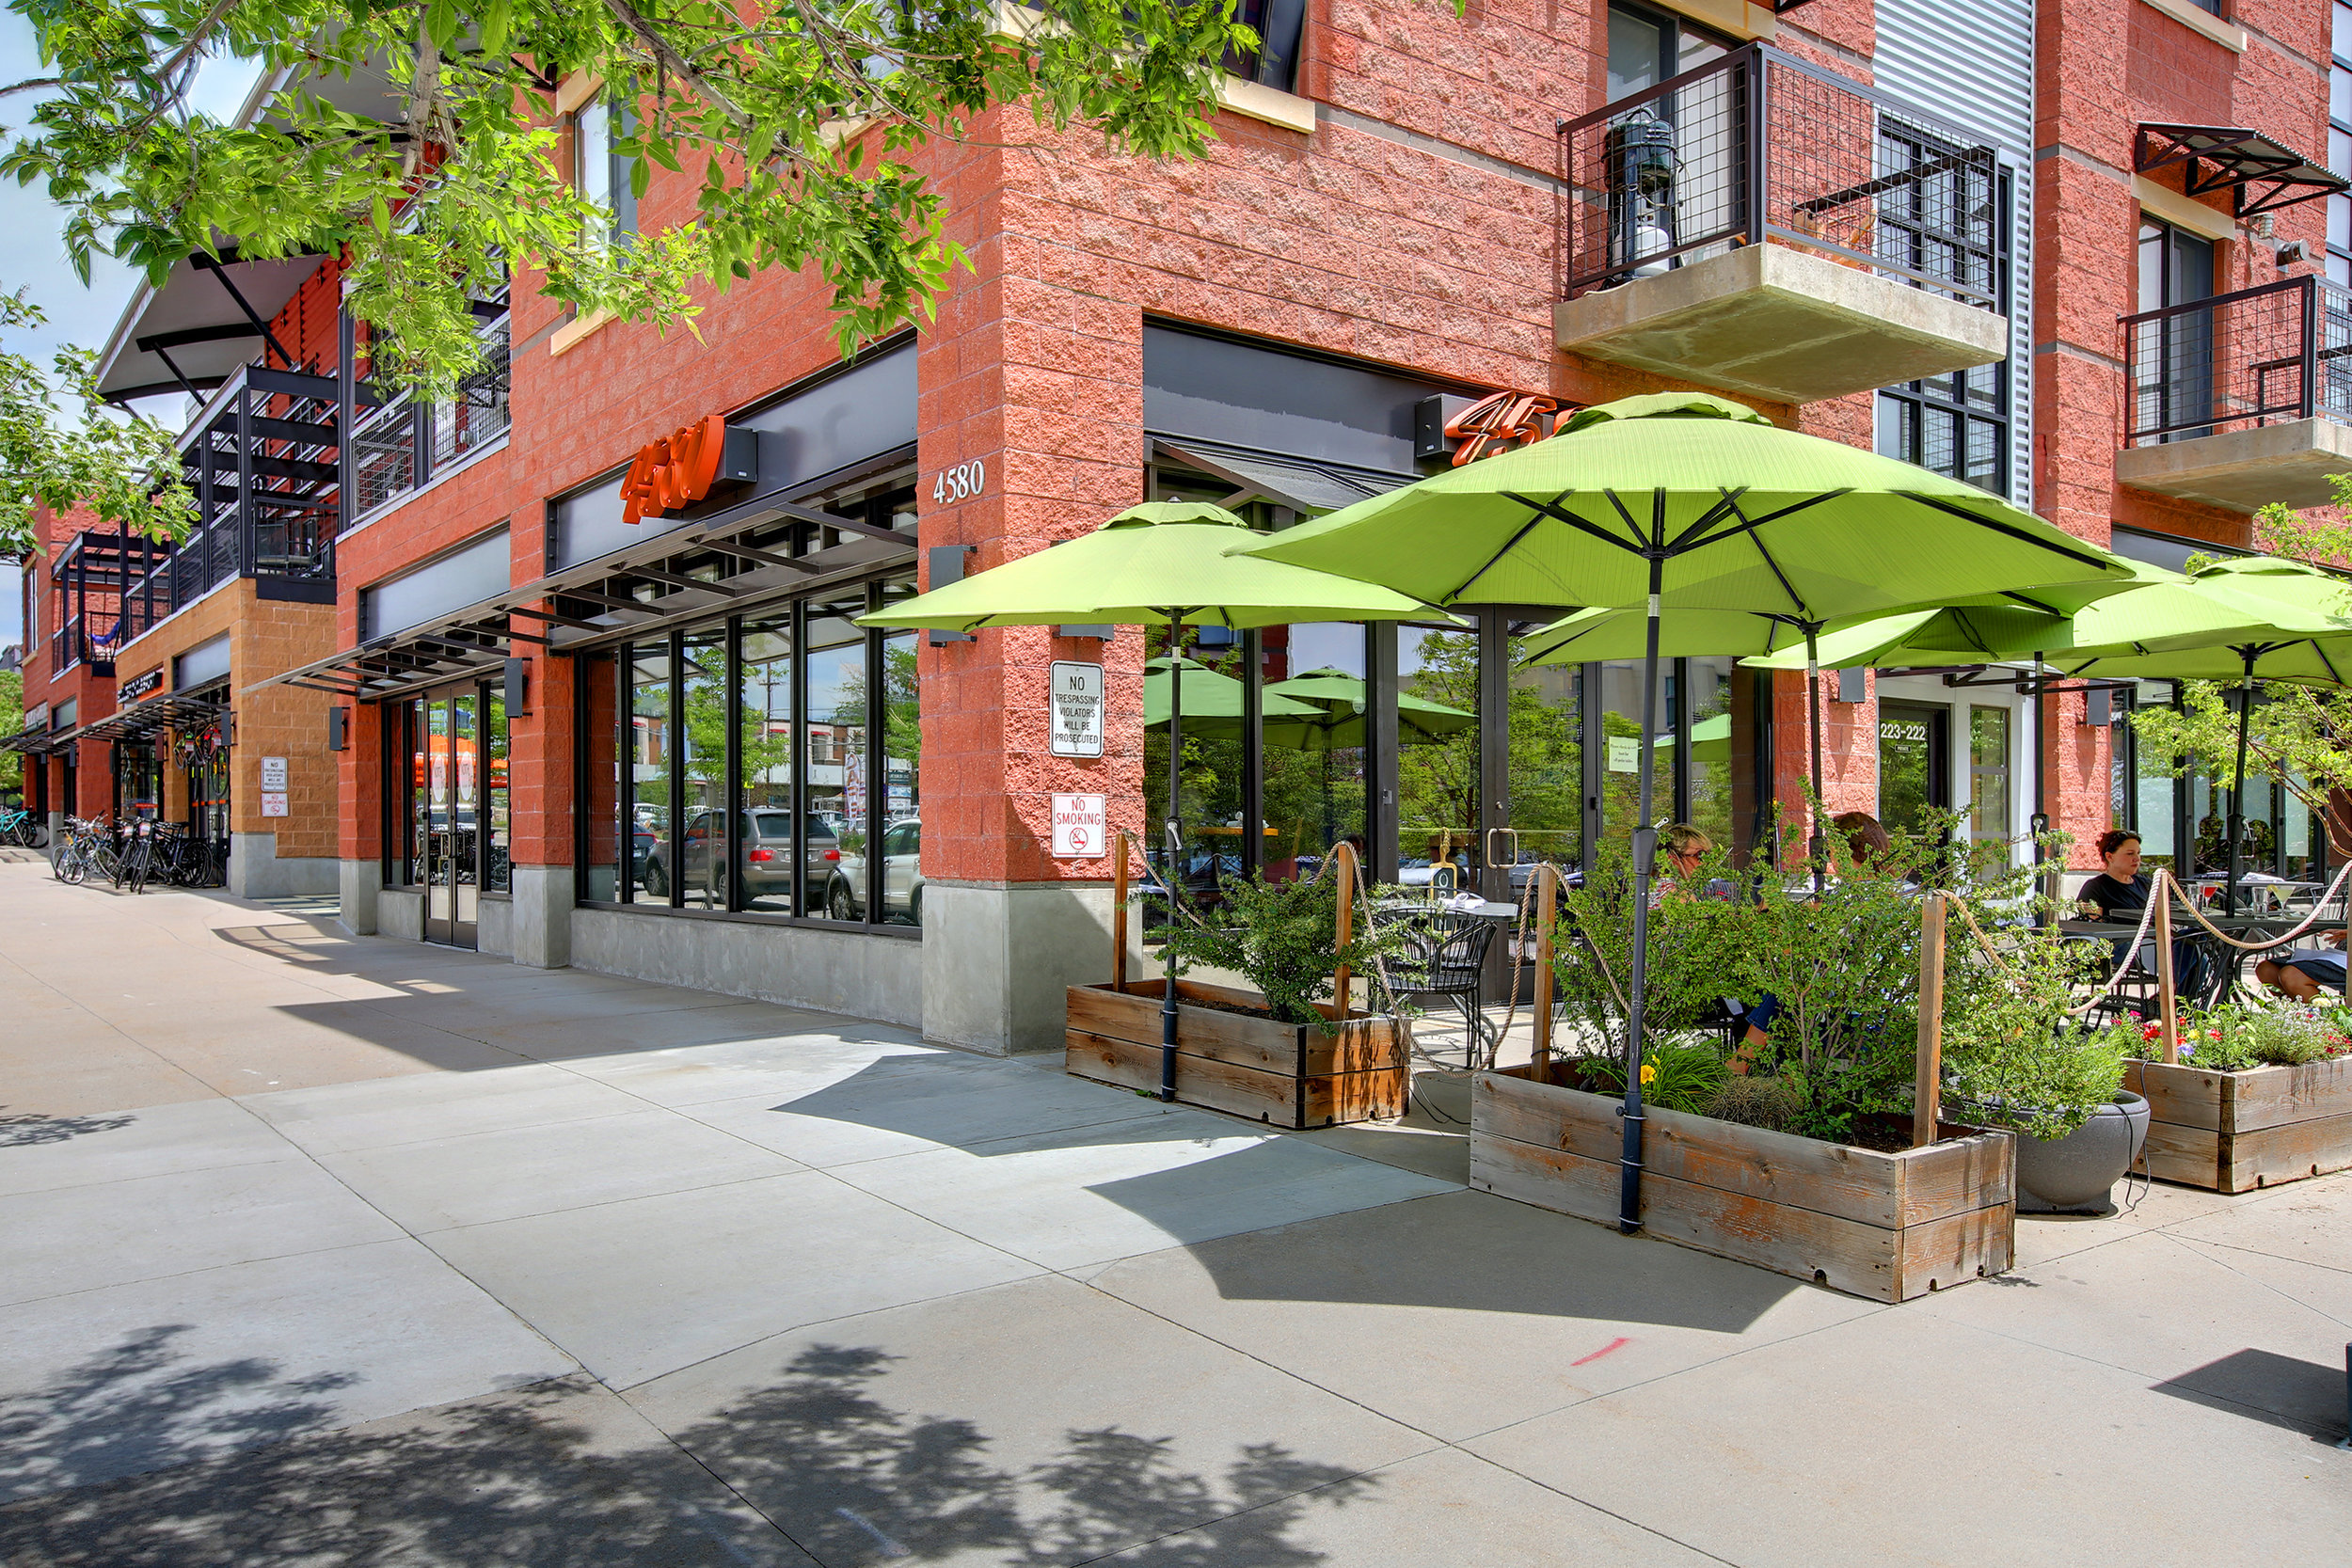 Looking for a culinary treat? - For a quick bite nearby Bacco Mozzarella Bar offers relaxed al fresca dining, or stop by Proto's for north Boulder's best Pizza!